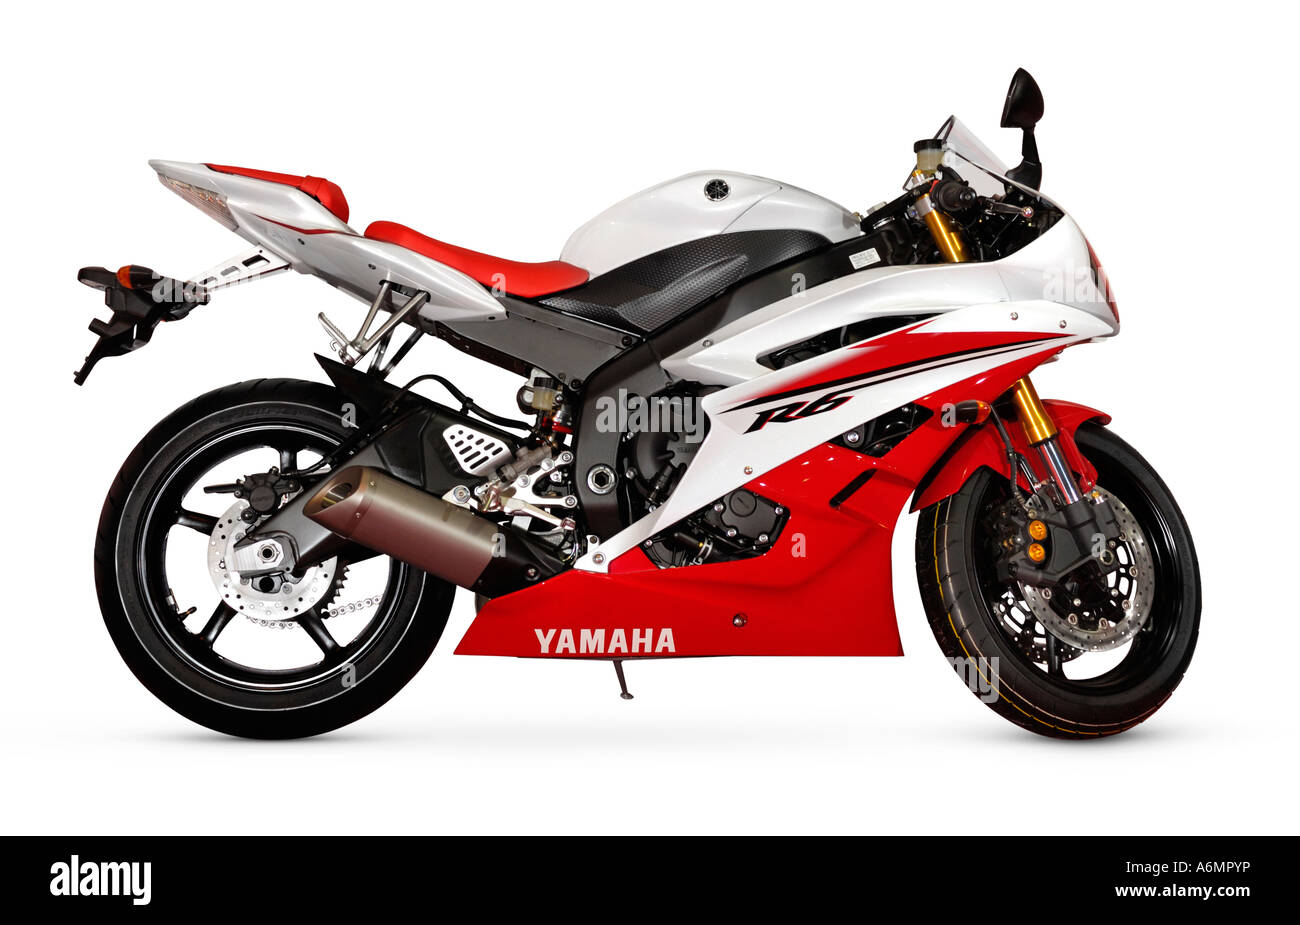 Middleweight supersport bike Yamaha YZF R6 2006 red white racing motorcycle - Stock Image